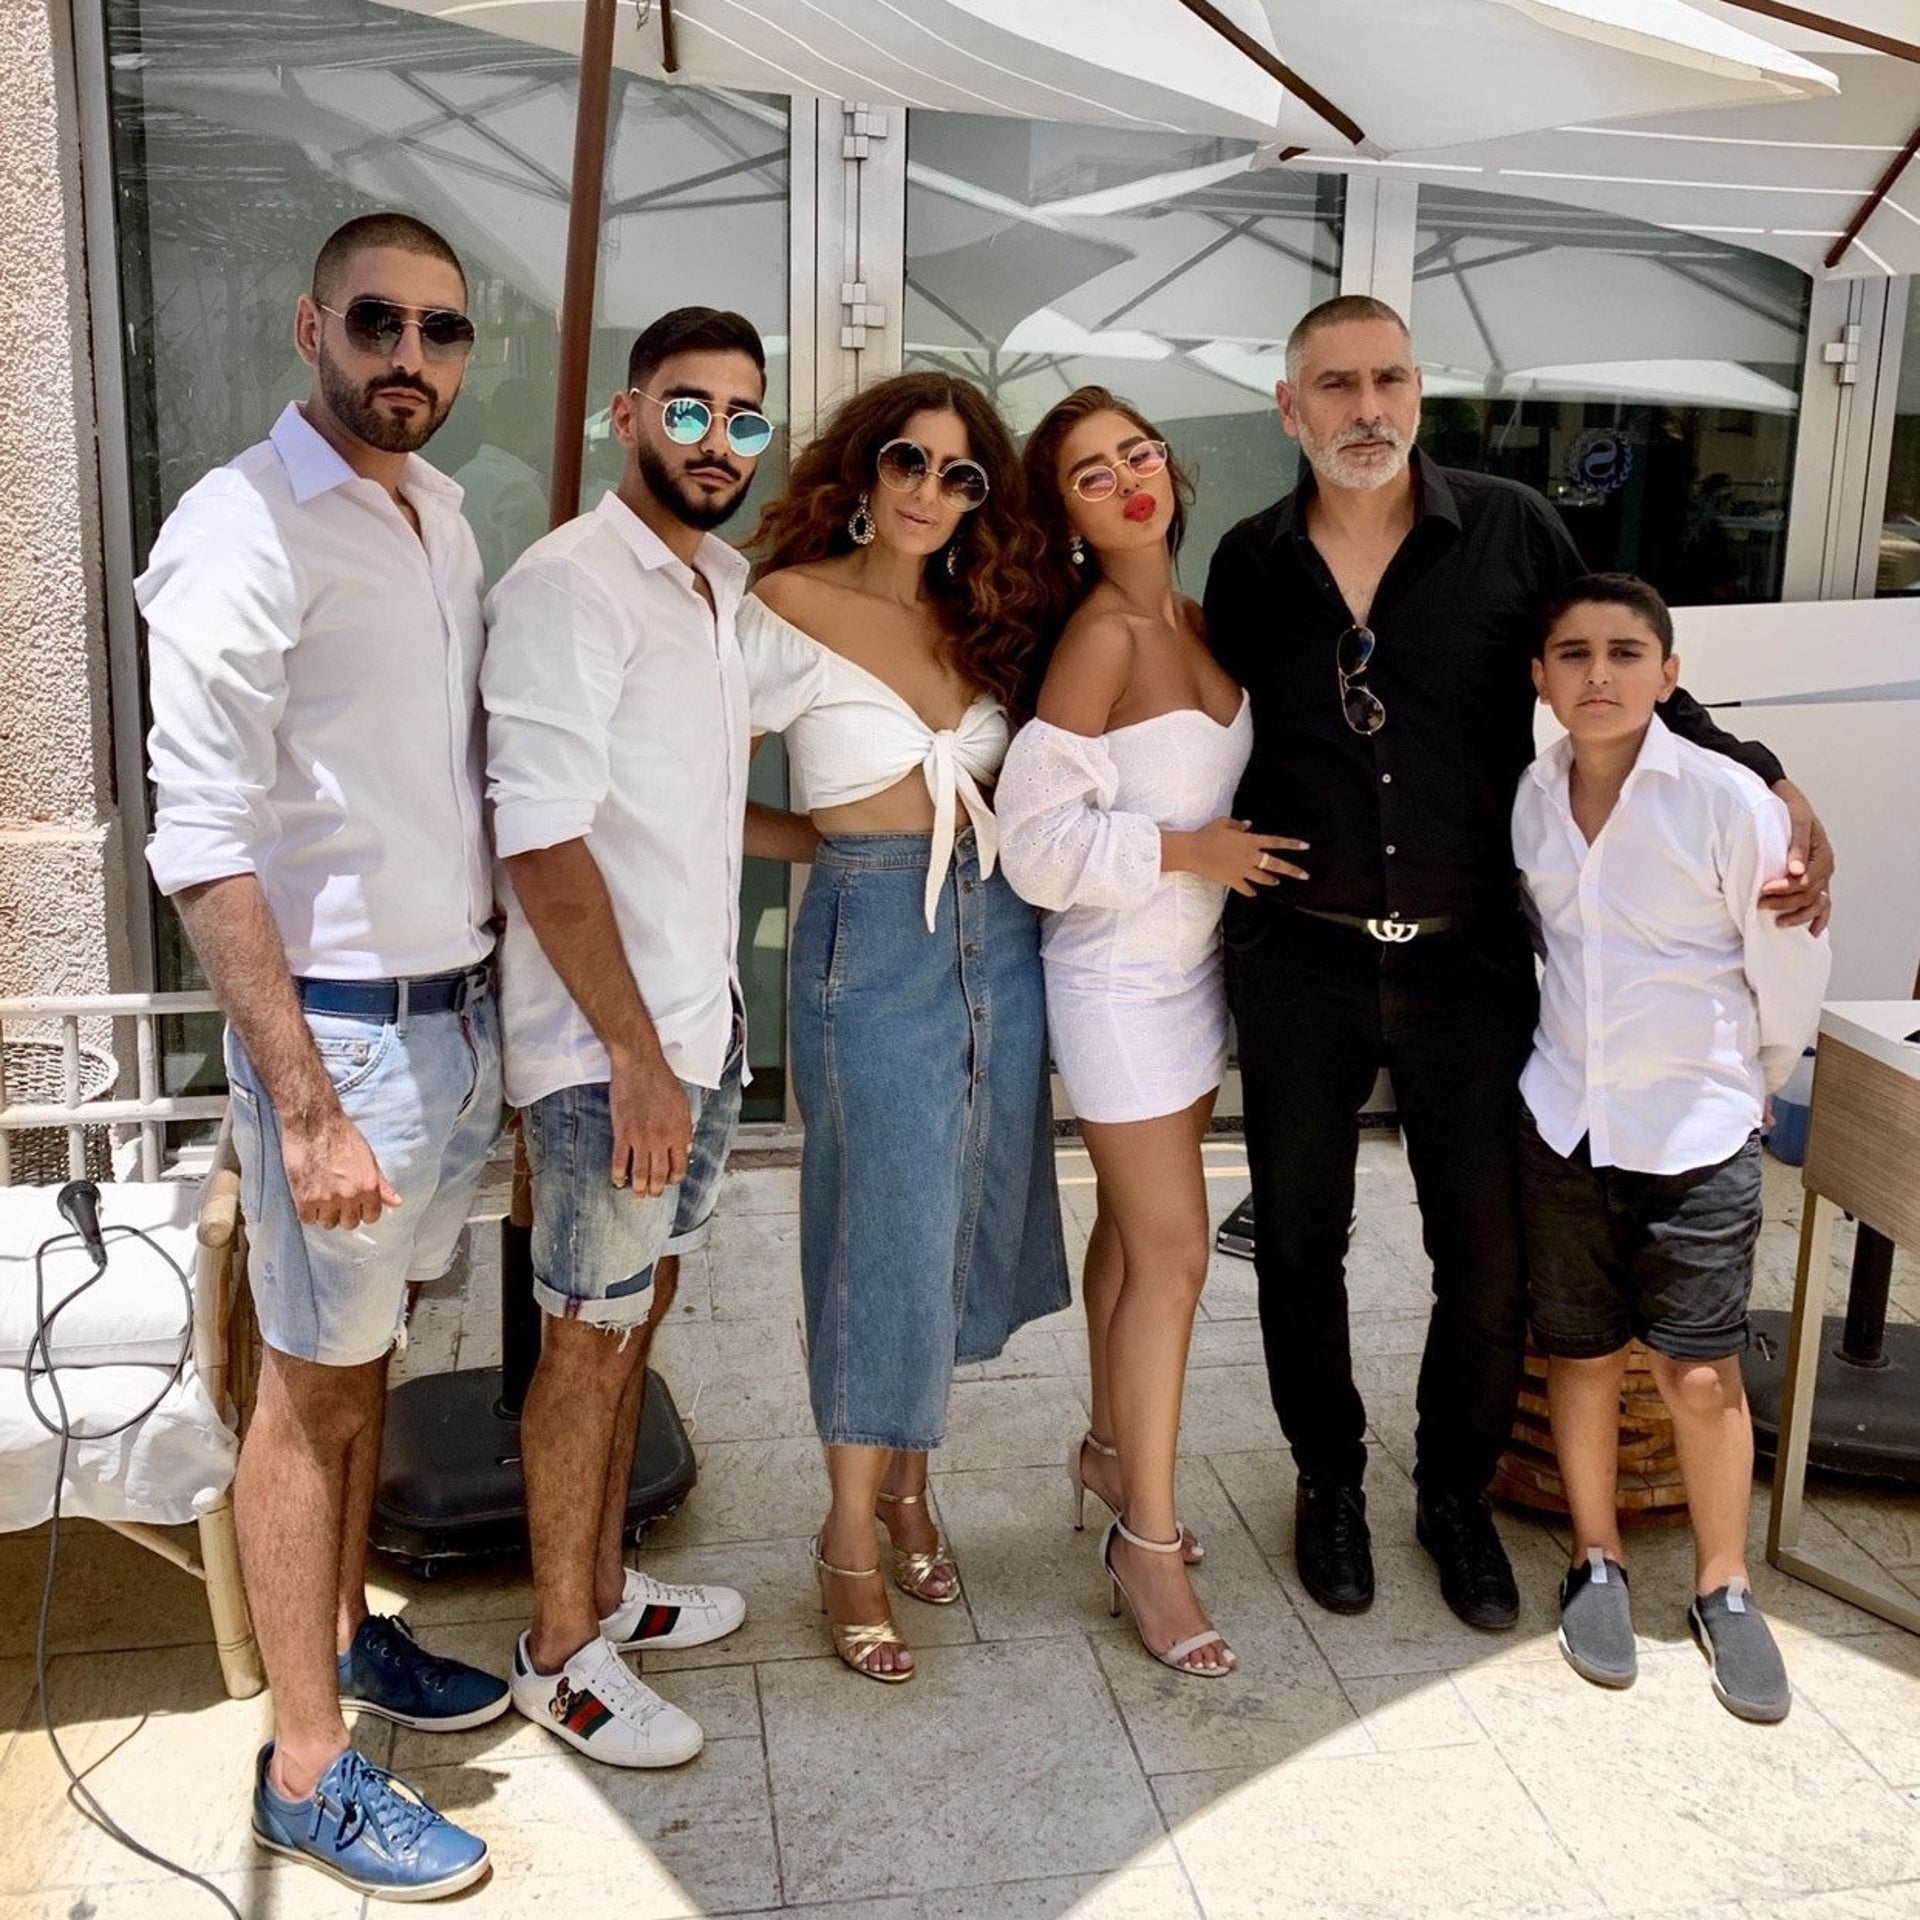 Aline Cohen, third from right, with her family. Her mother manages her daughter's career, while her father, a lawyer by profession, is her legal counsel and draws up her contracts.